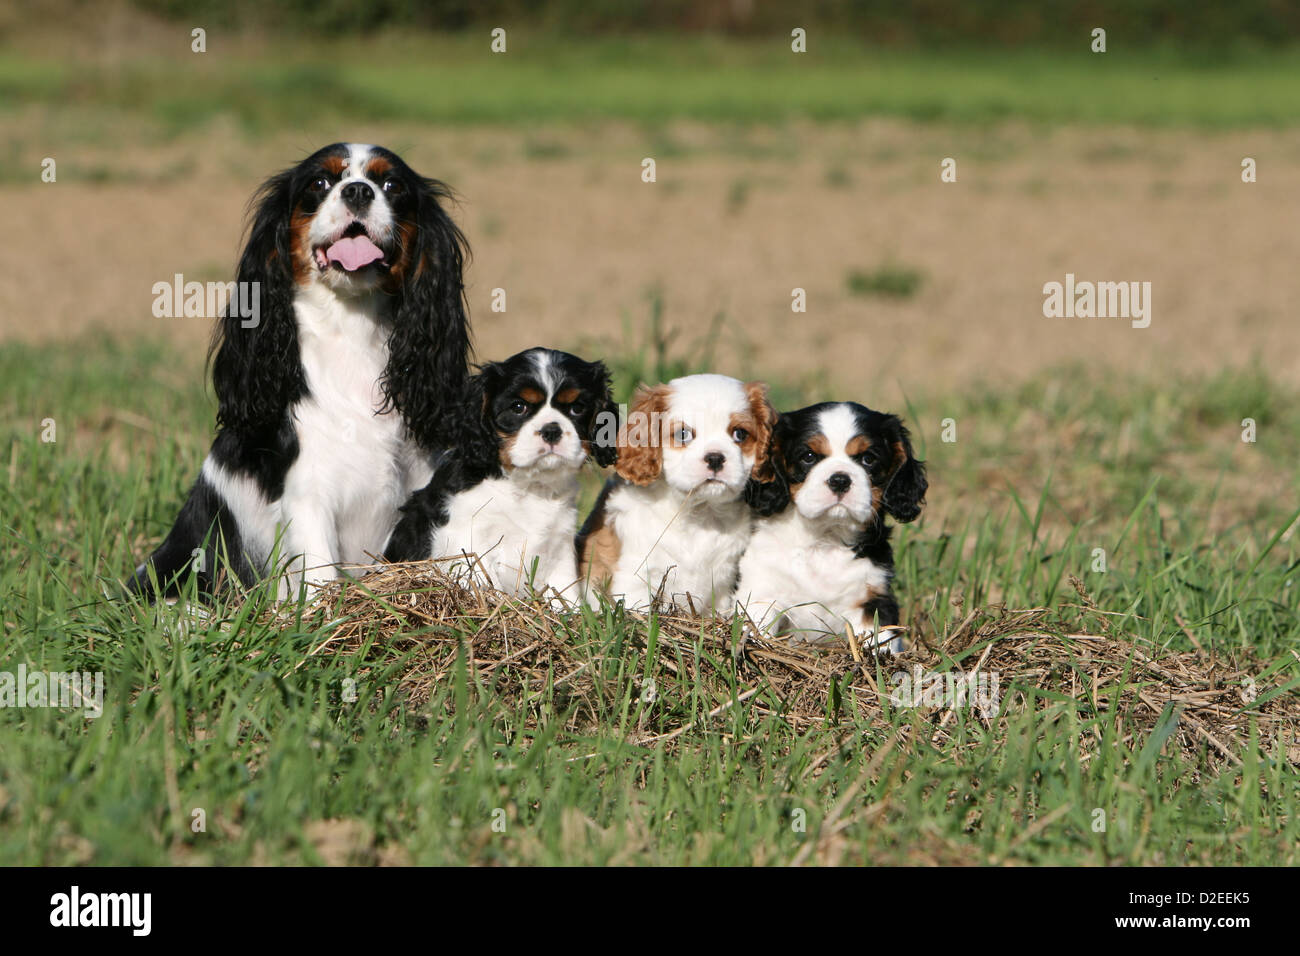 Dog Cavalier King Charles Spaniel adult and three puppies different colors  (tricolor and Blenheim) sitting in a meadow